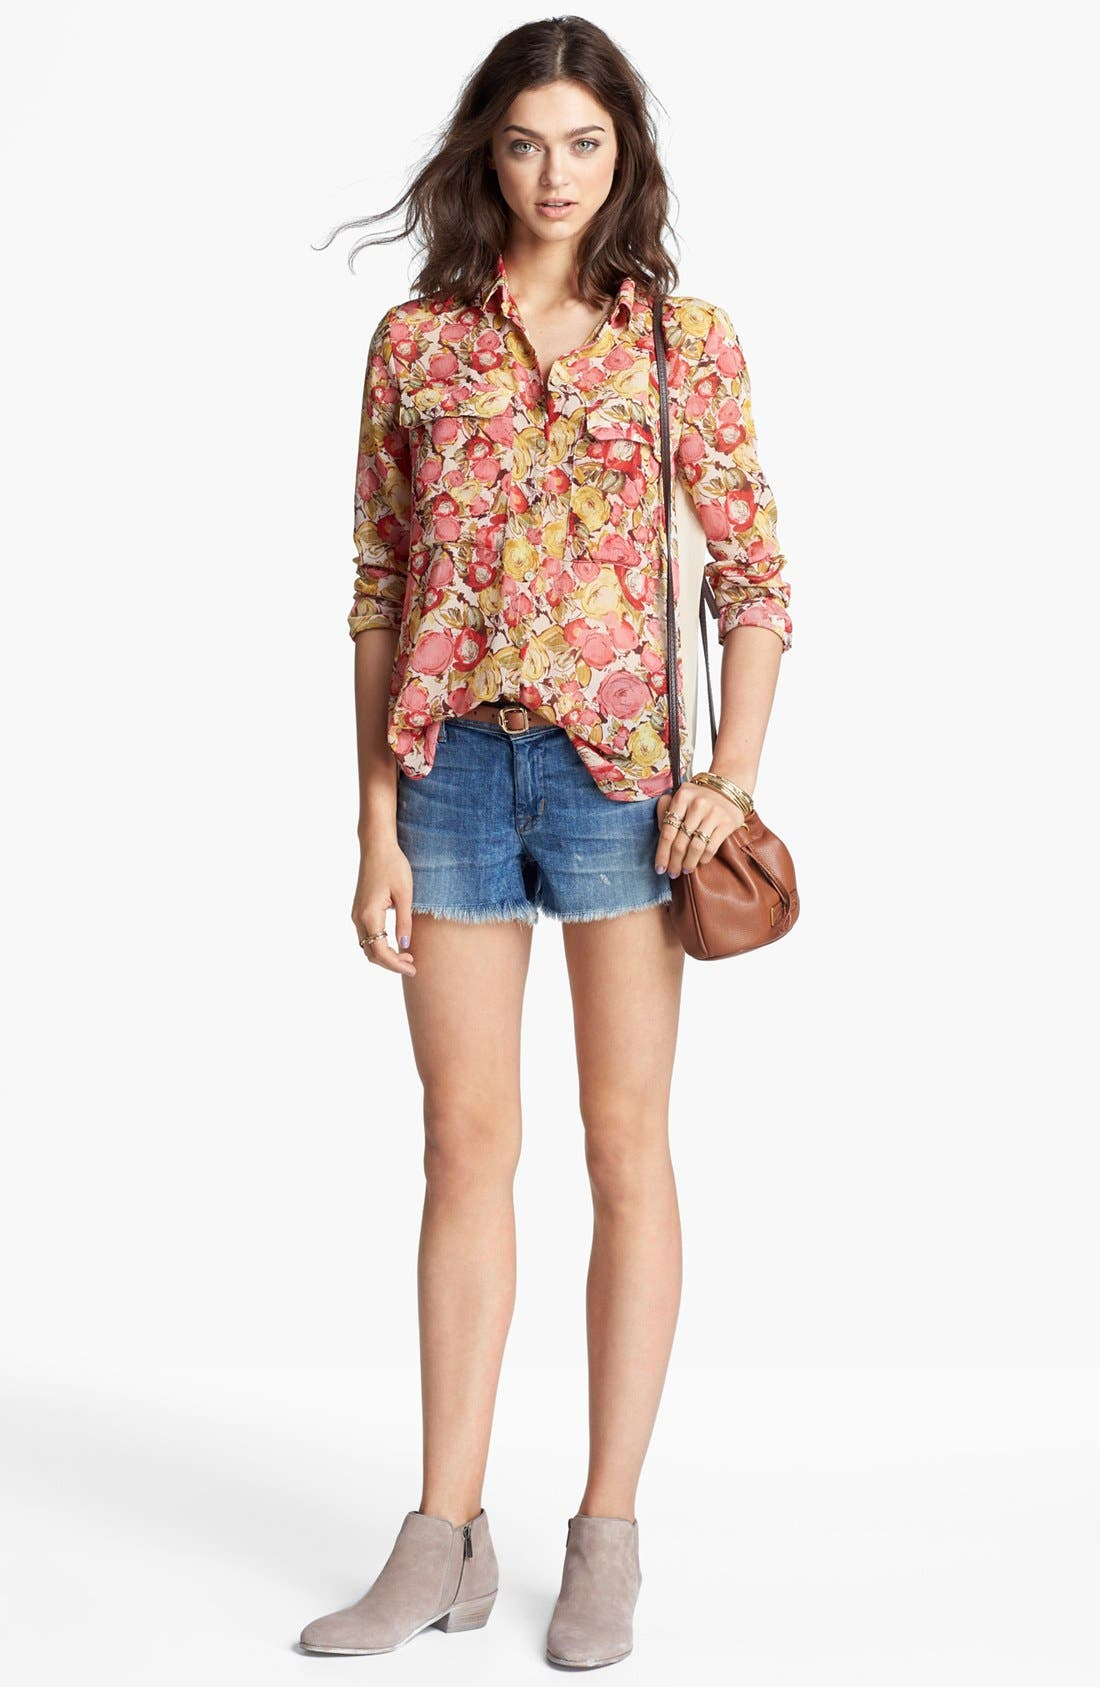 Alternate Image 1 Selected - KUT from the Kloth Top & Hudson Jeans Denim Shorts